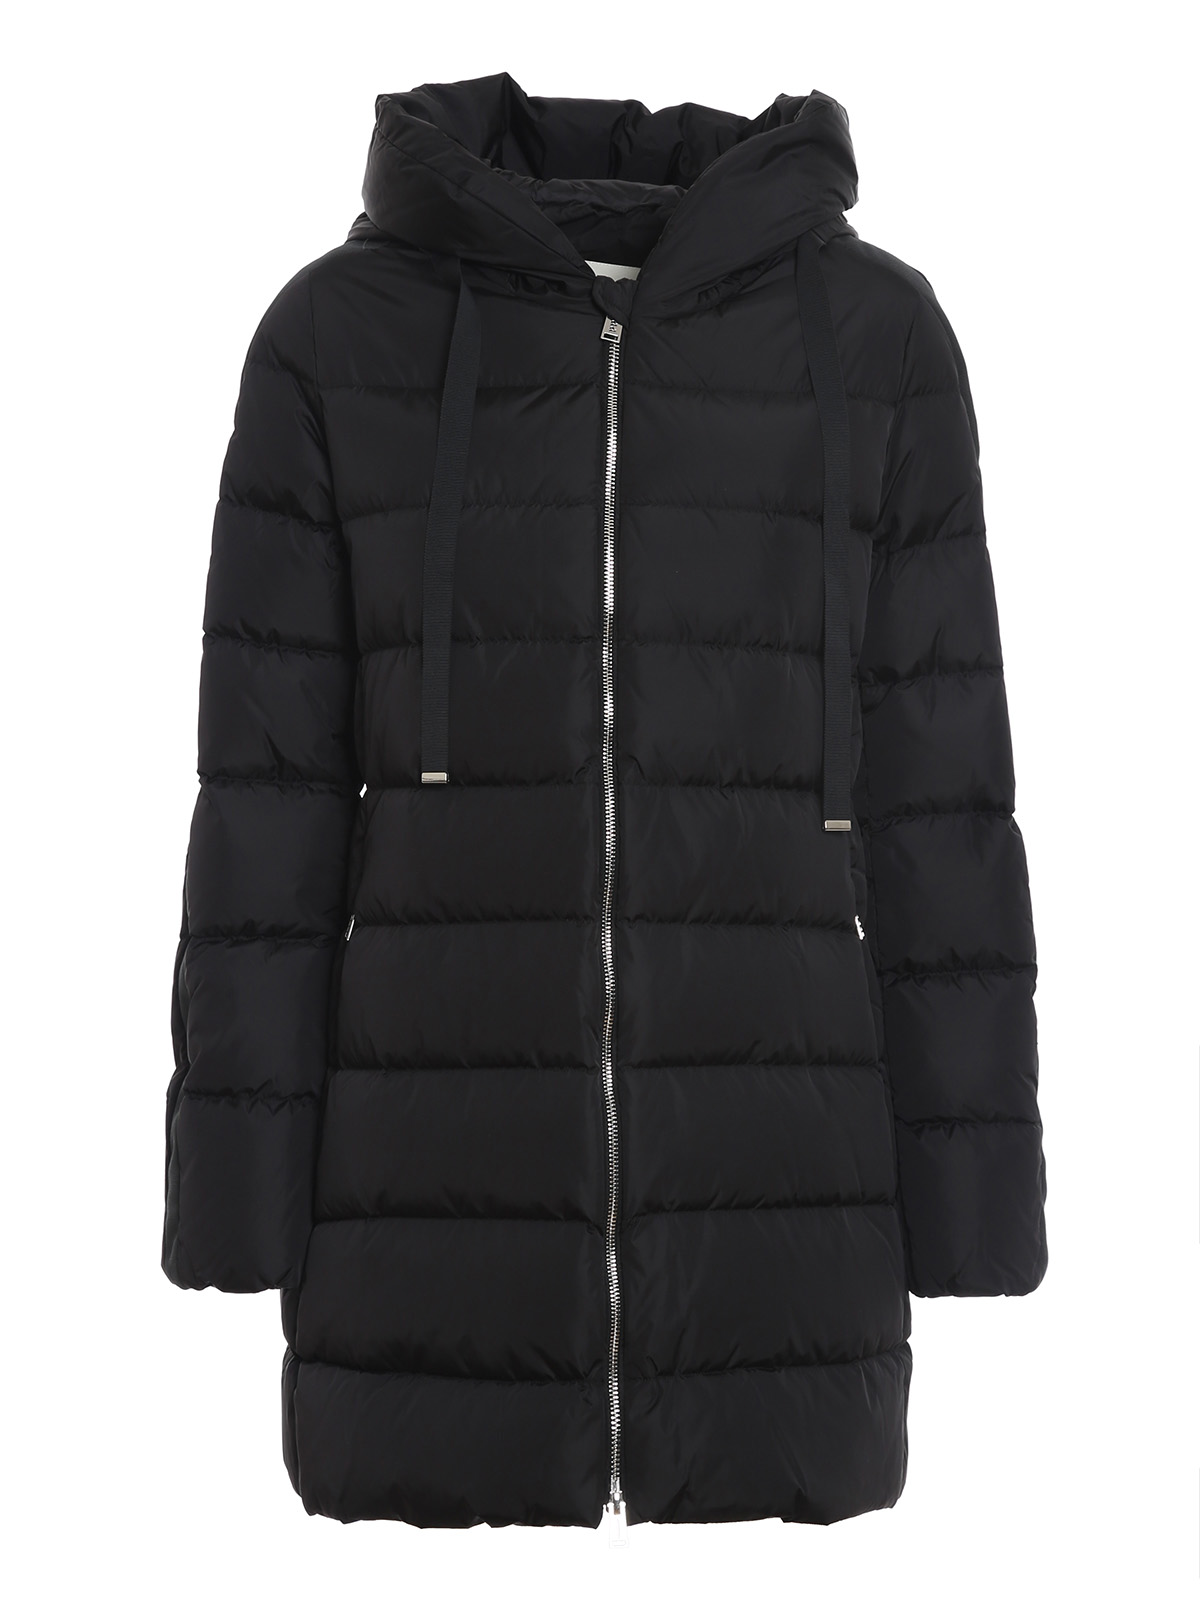 Add MATT EFFECT BLACK PUFFER JACKET